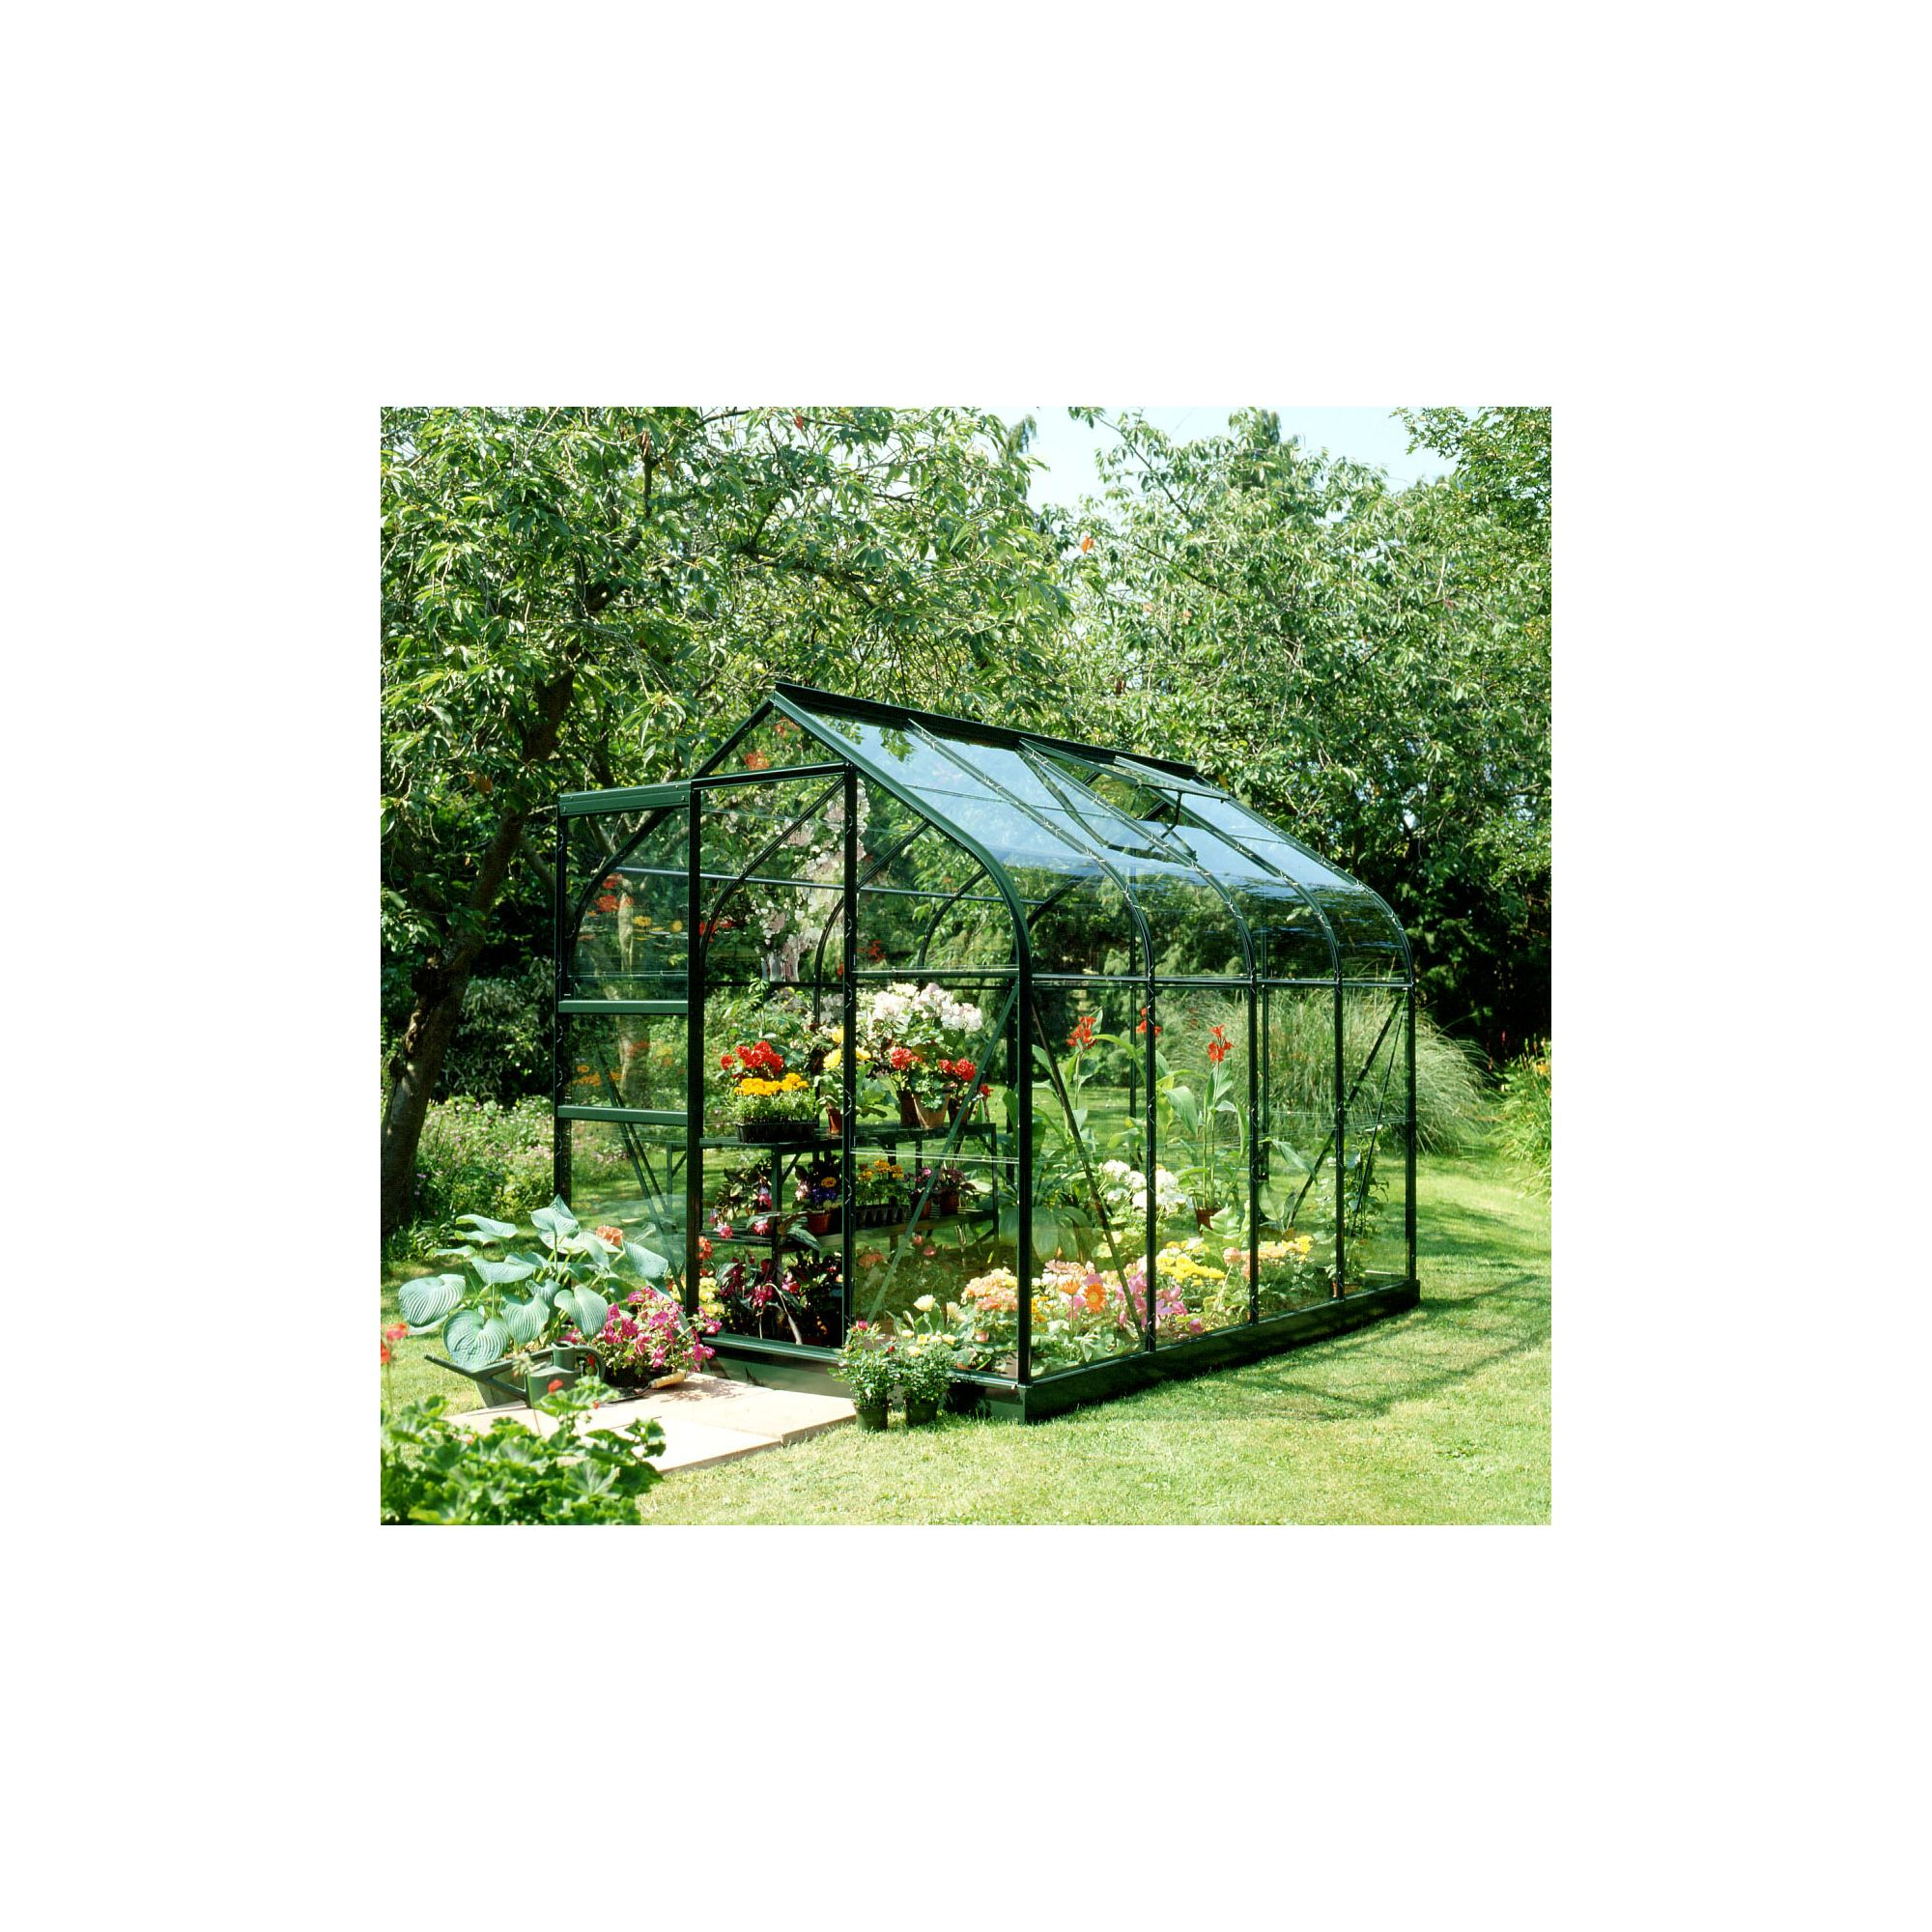 Halls 8x6 Supreme Greenframe Greenhouse + Base - Horticultural Glass at Tesco Direct